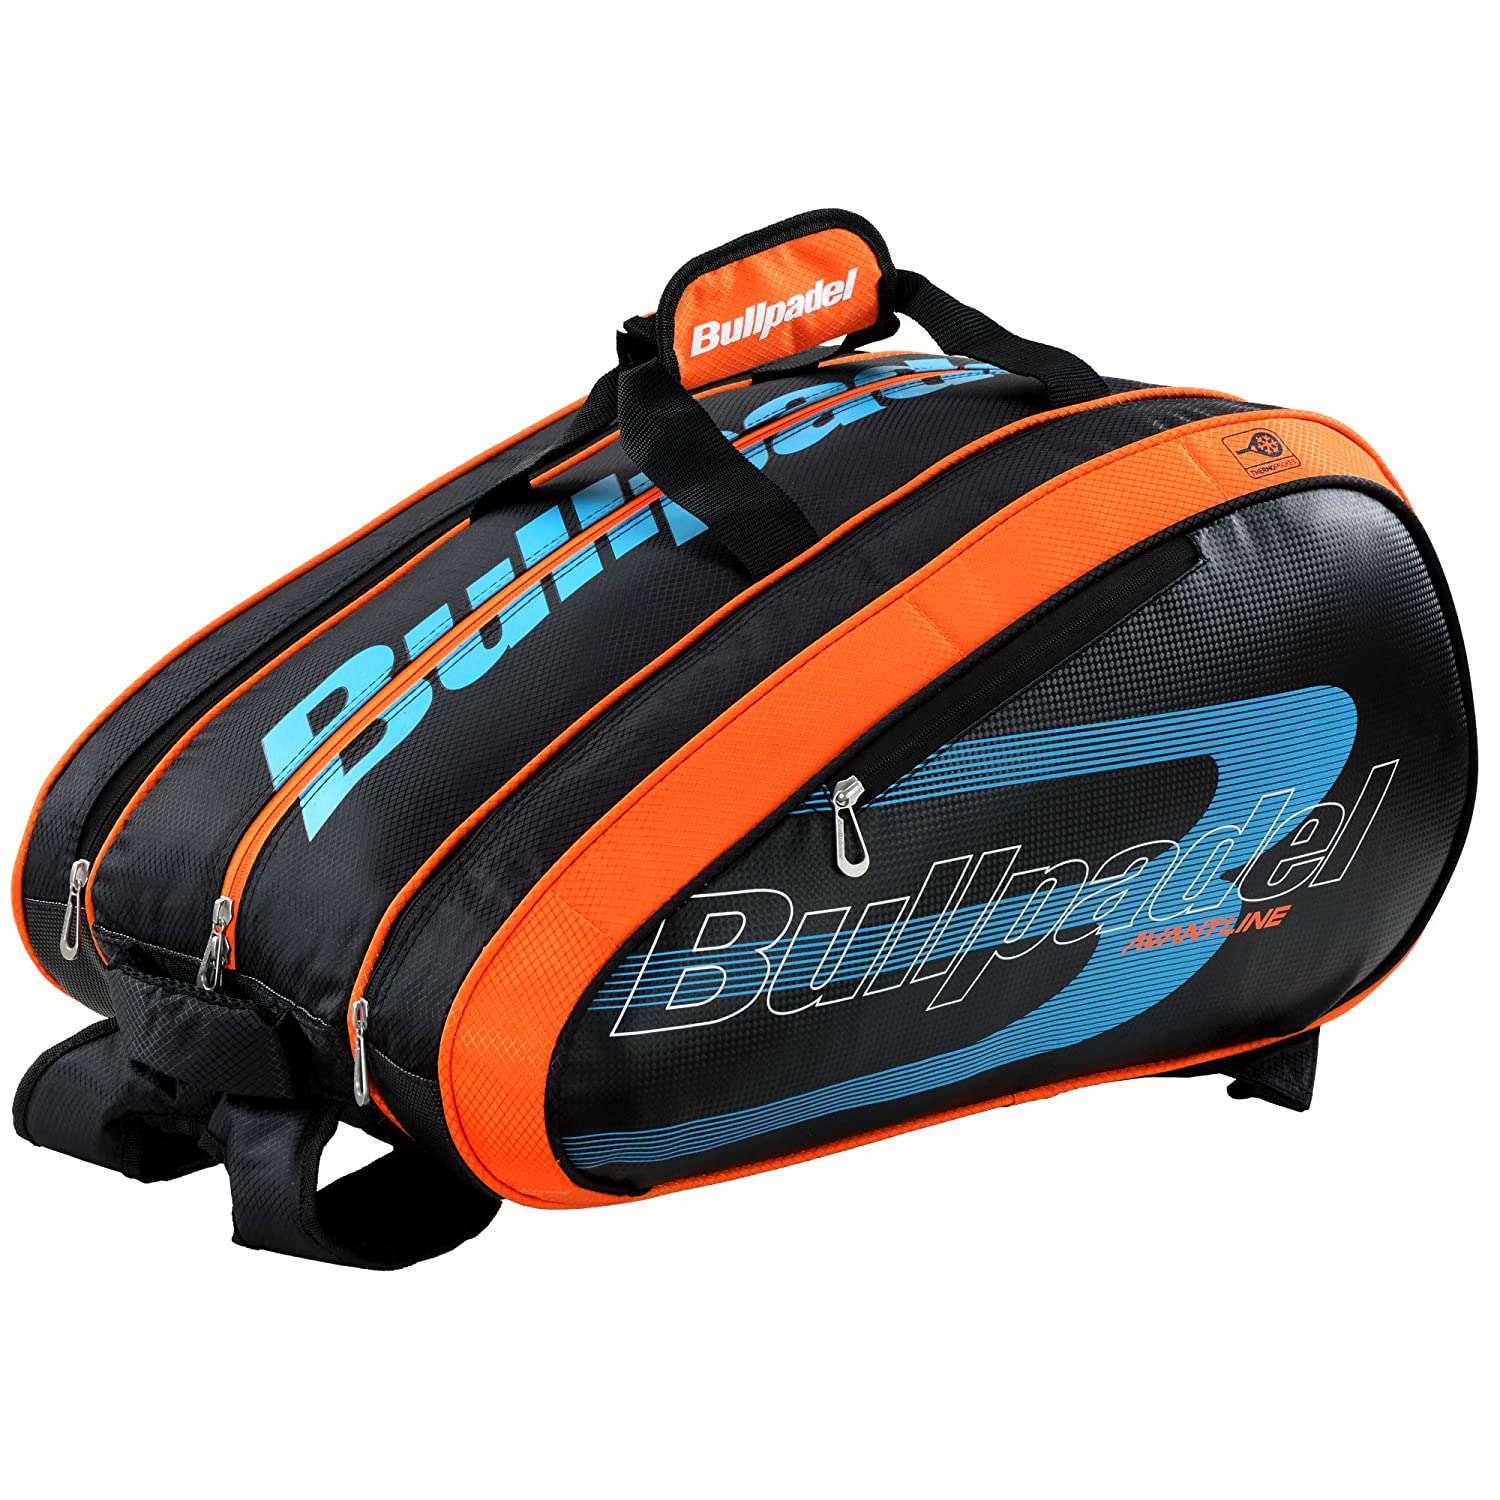 Bullpadel Paletero Avant S LTD Orange: Amazon.es: Deportes y aire ...